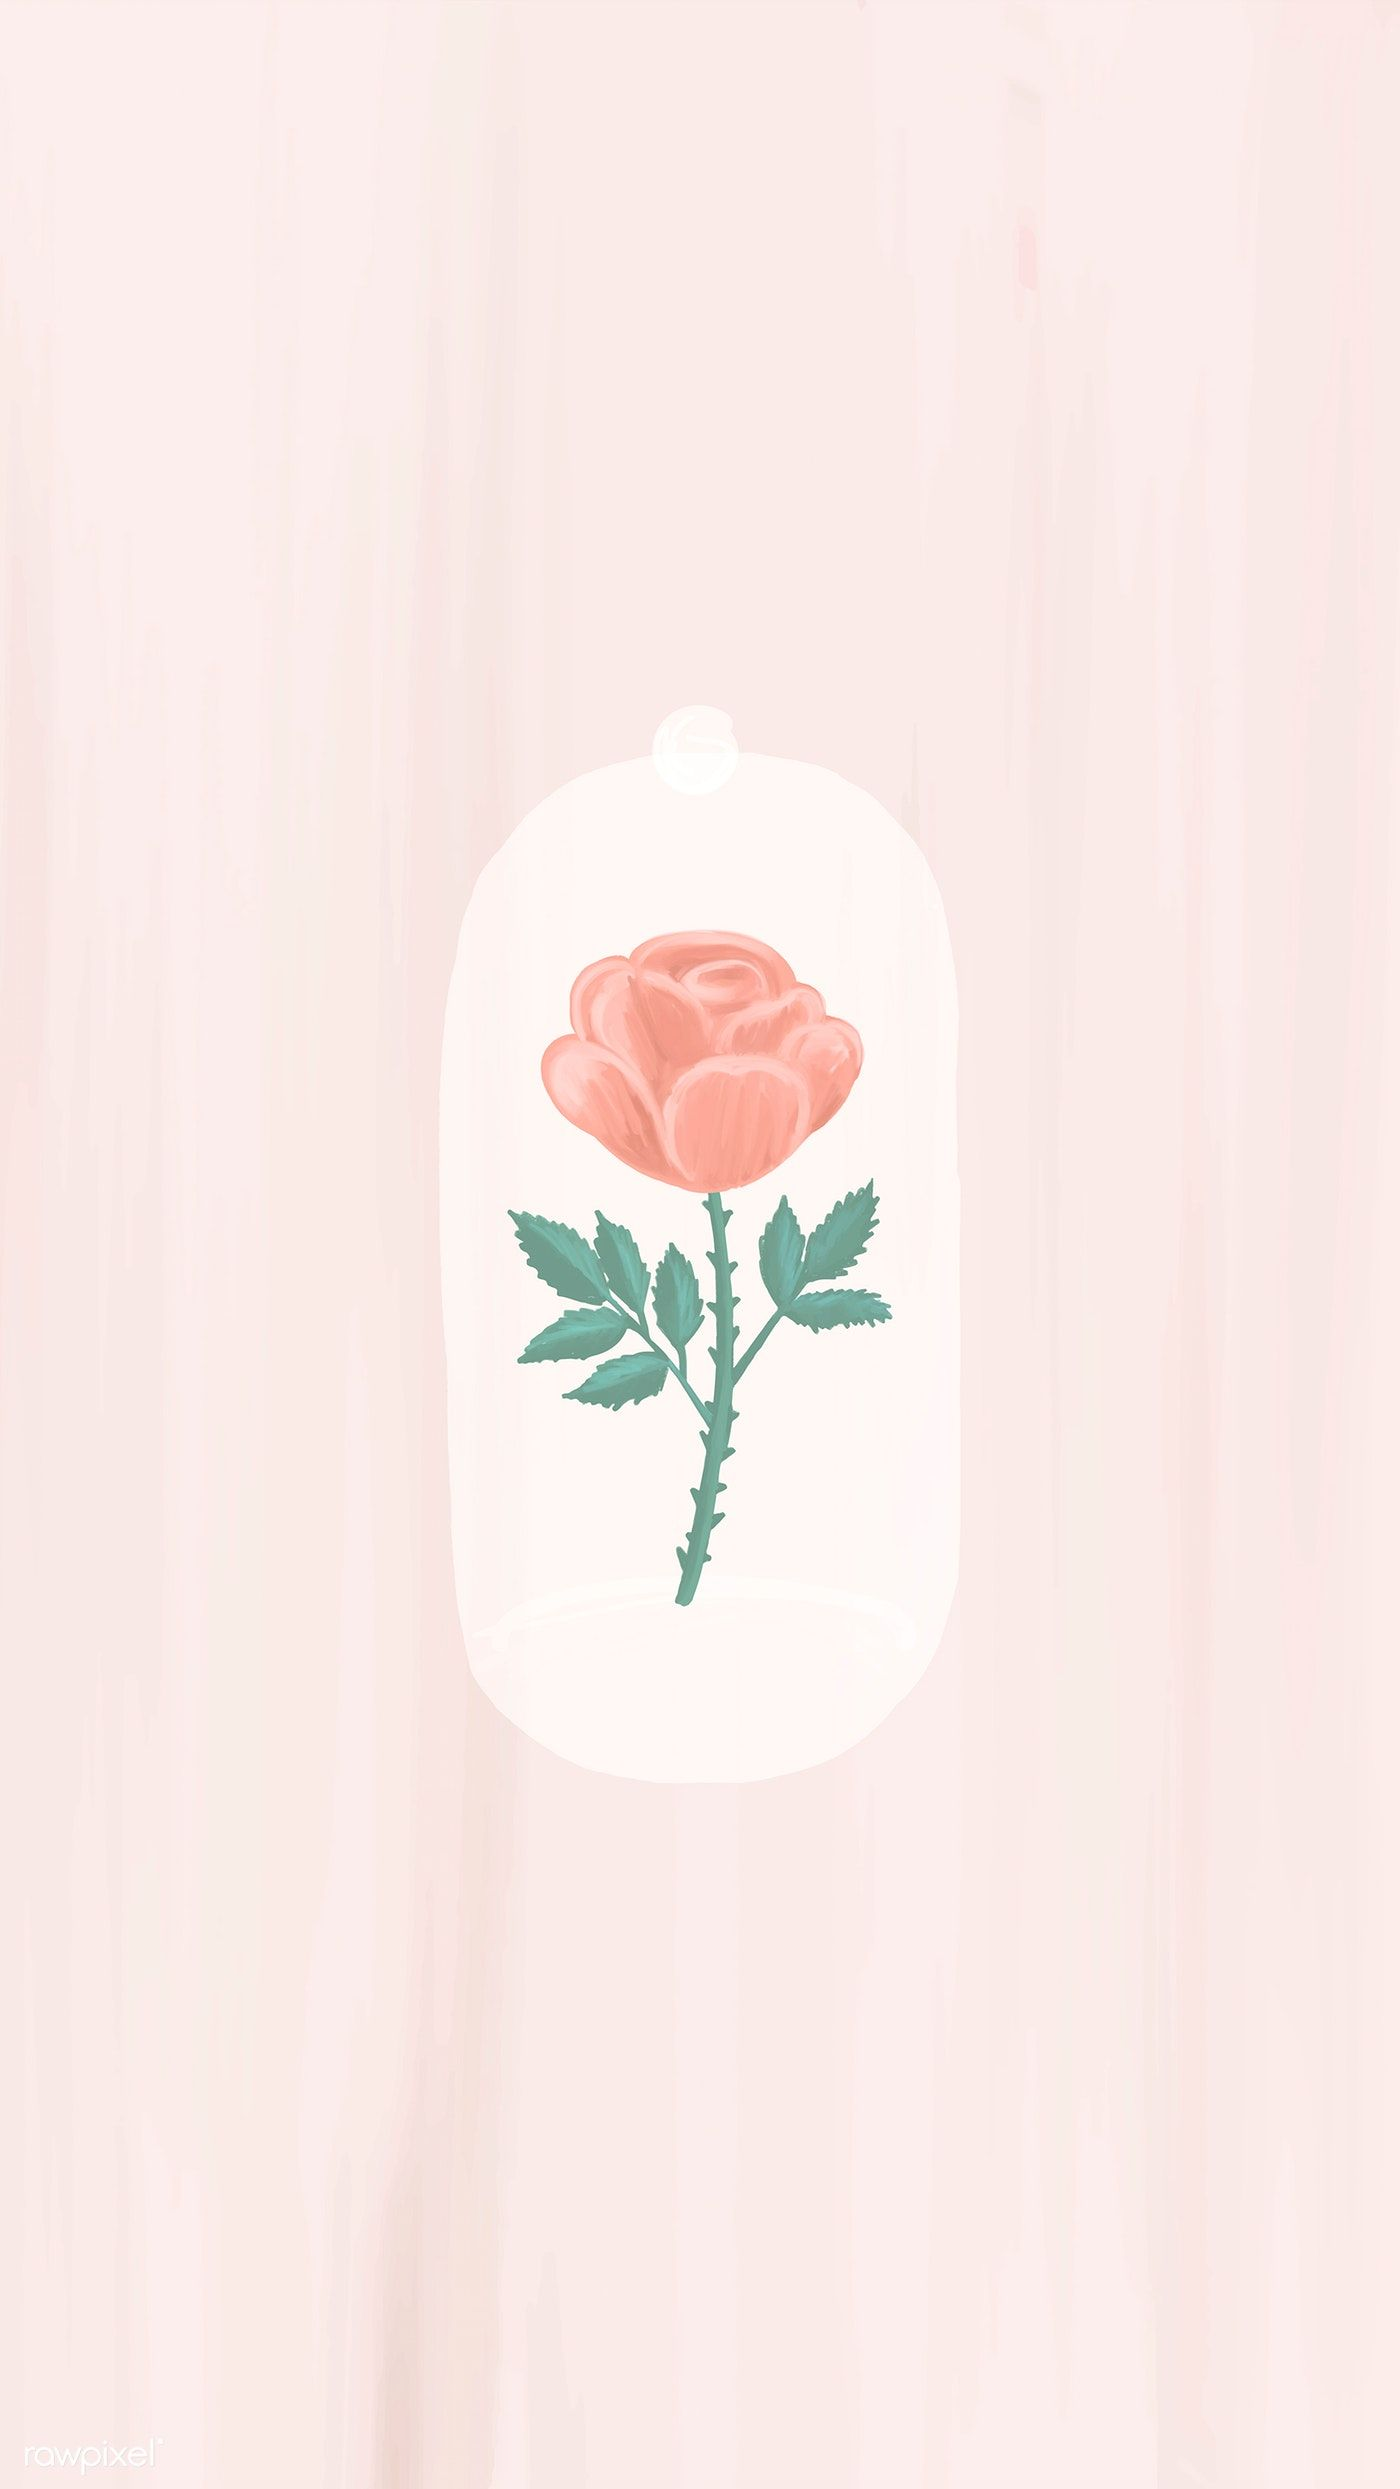 Cute wallpapers for phone